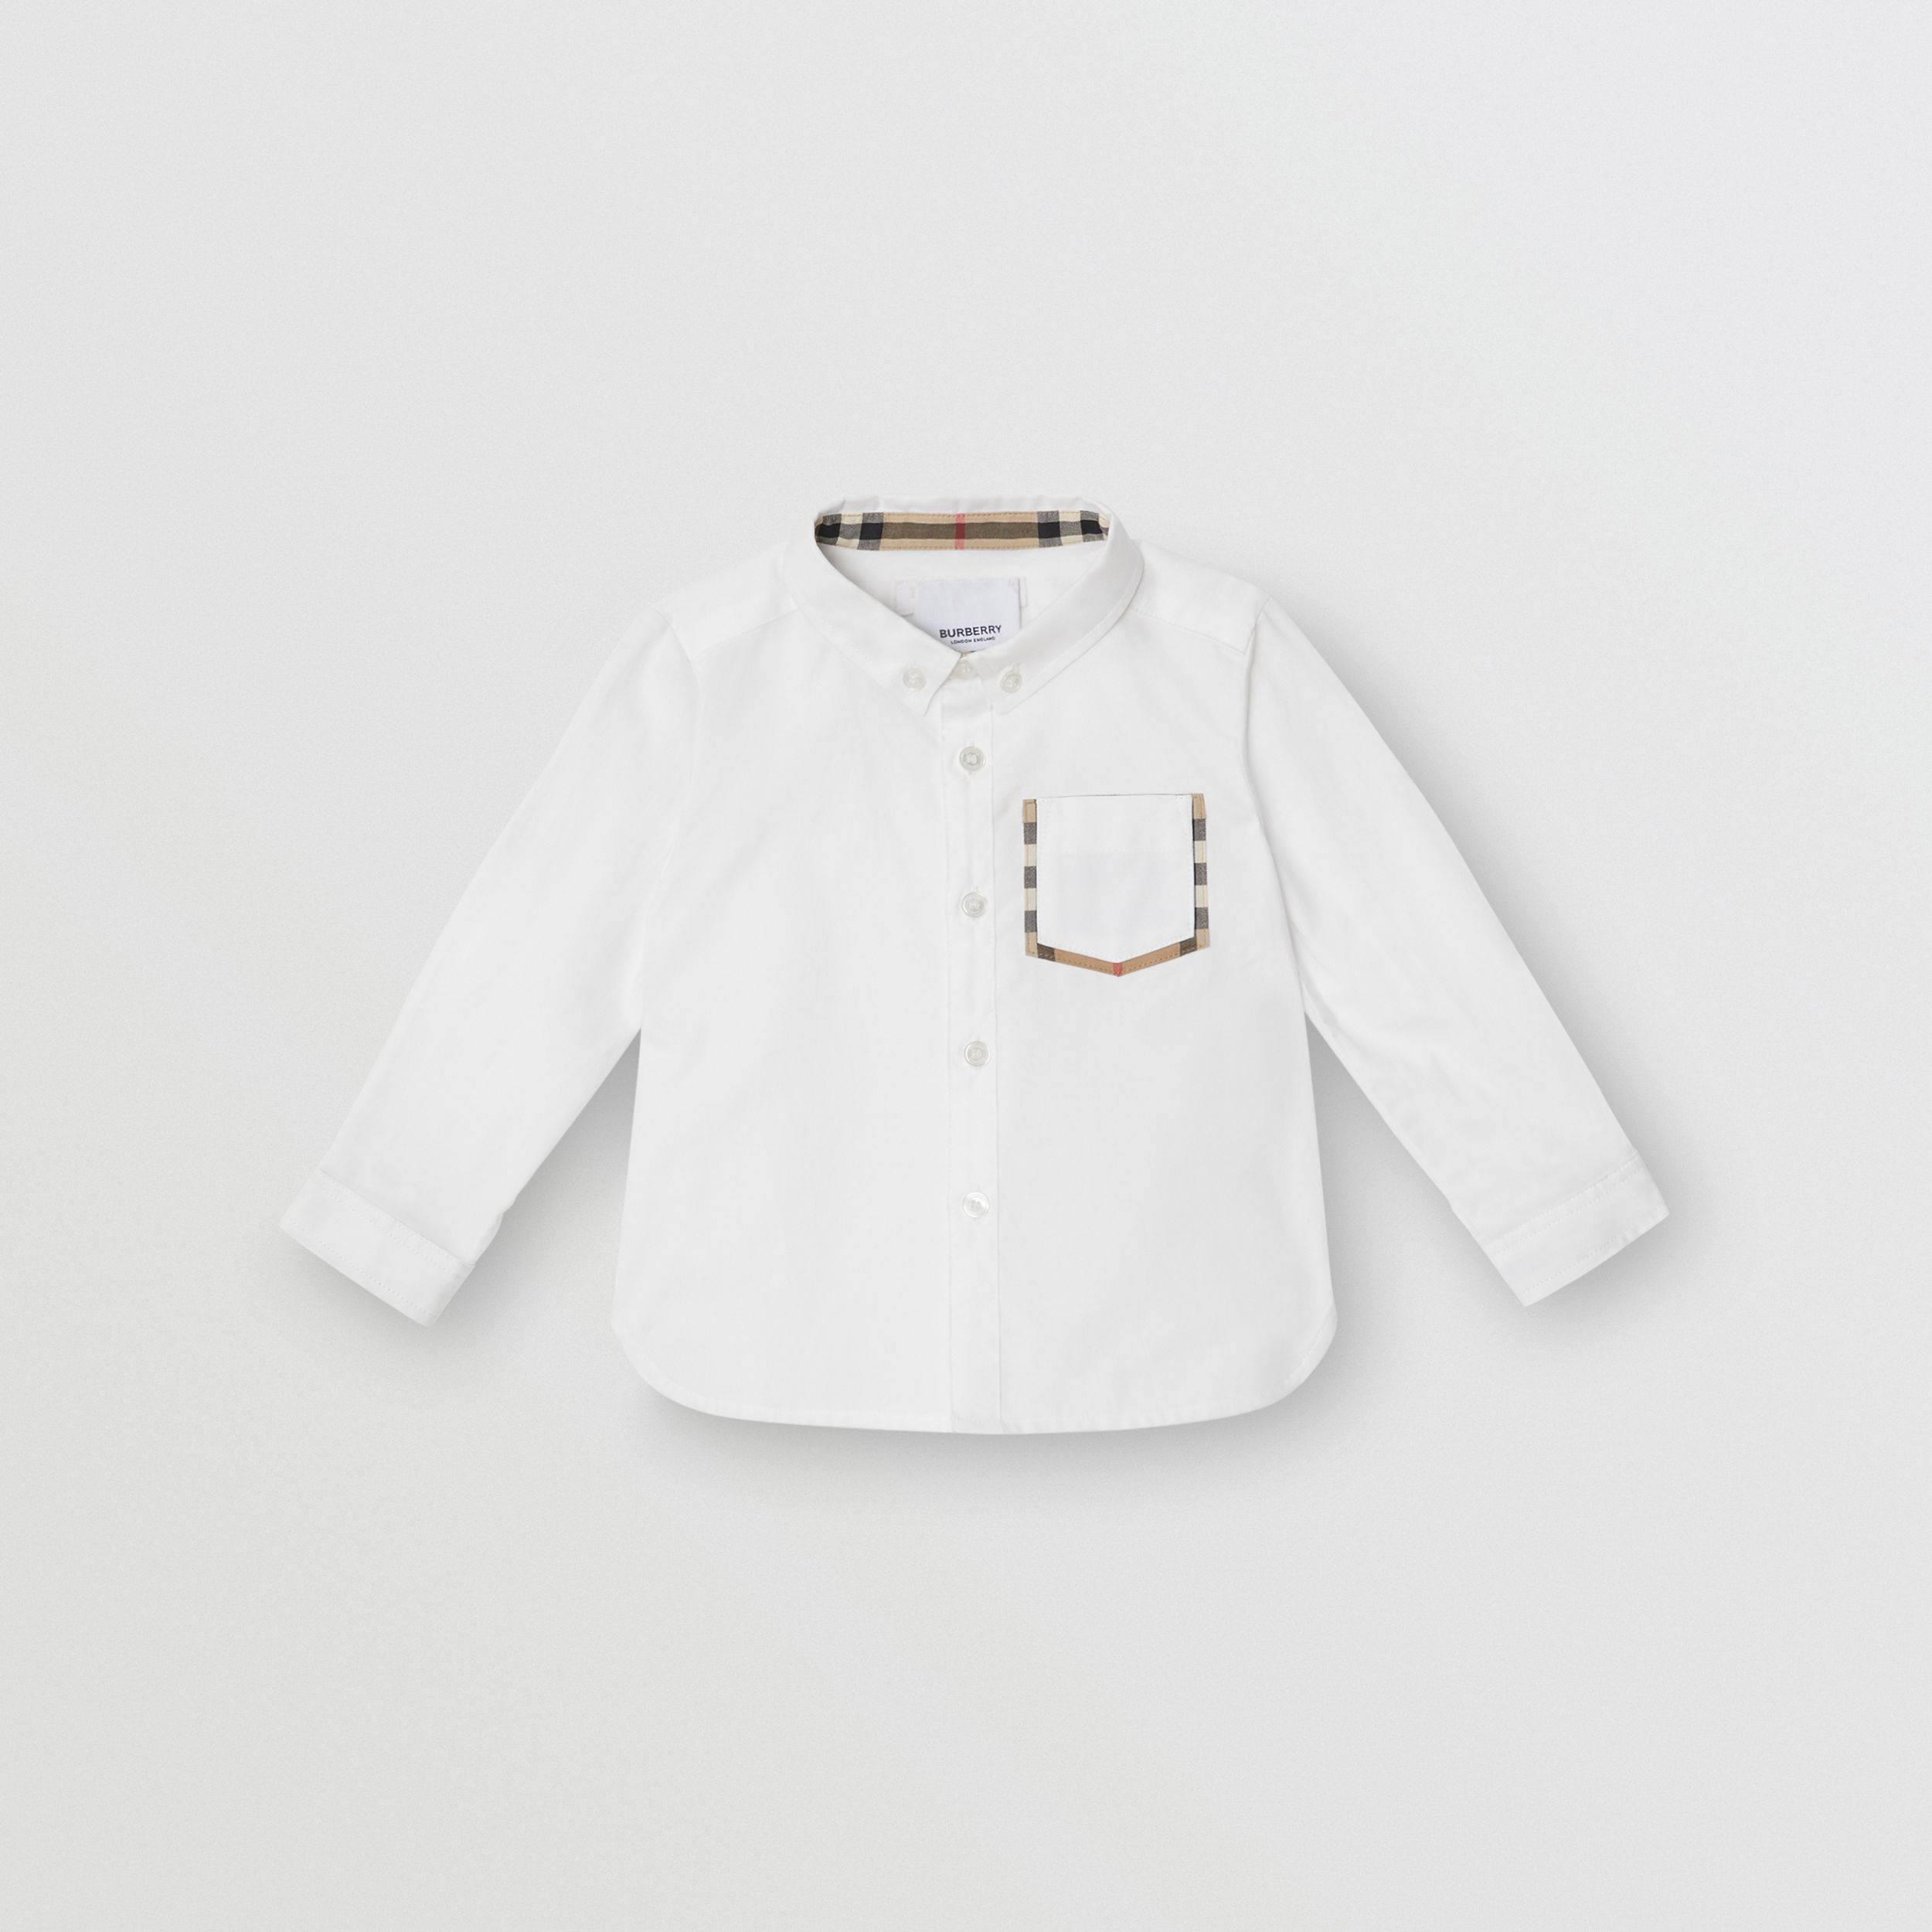 Vintage Check Detail Cotton Oxford Shirt in White - Children | Burberry - 1